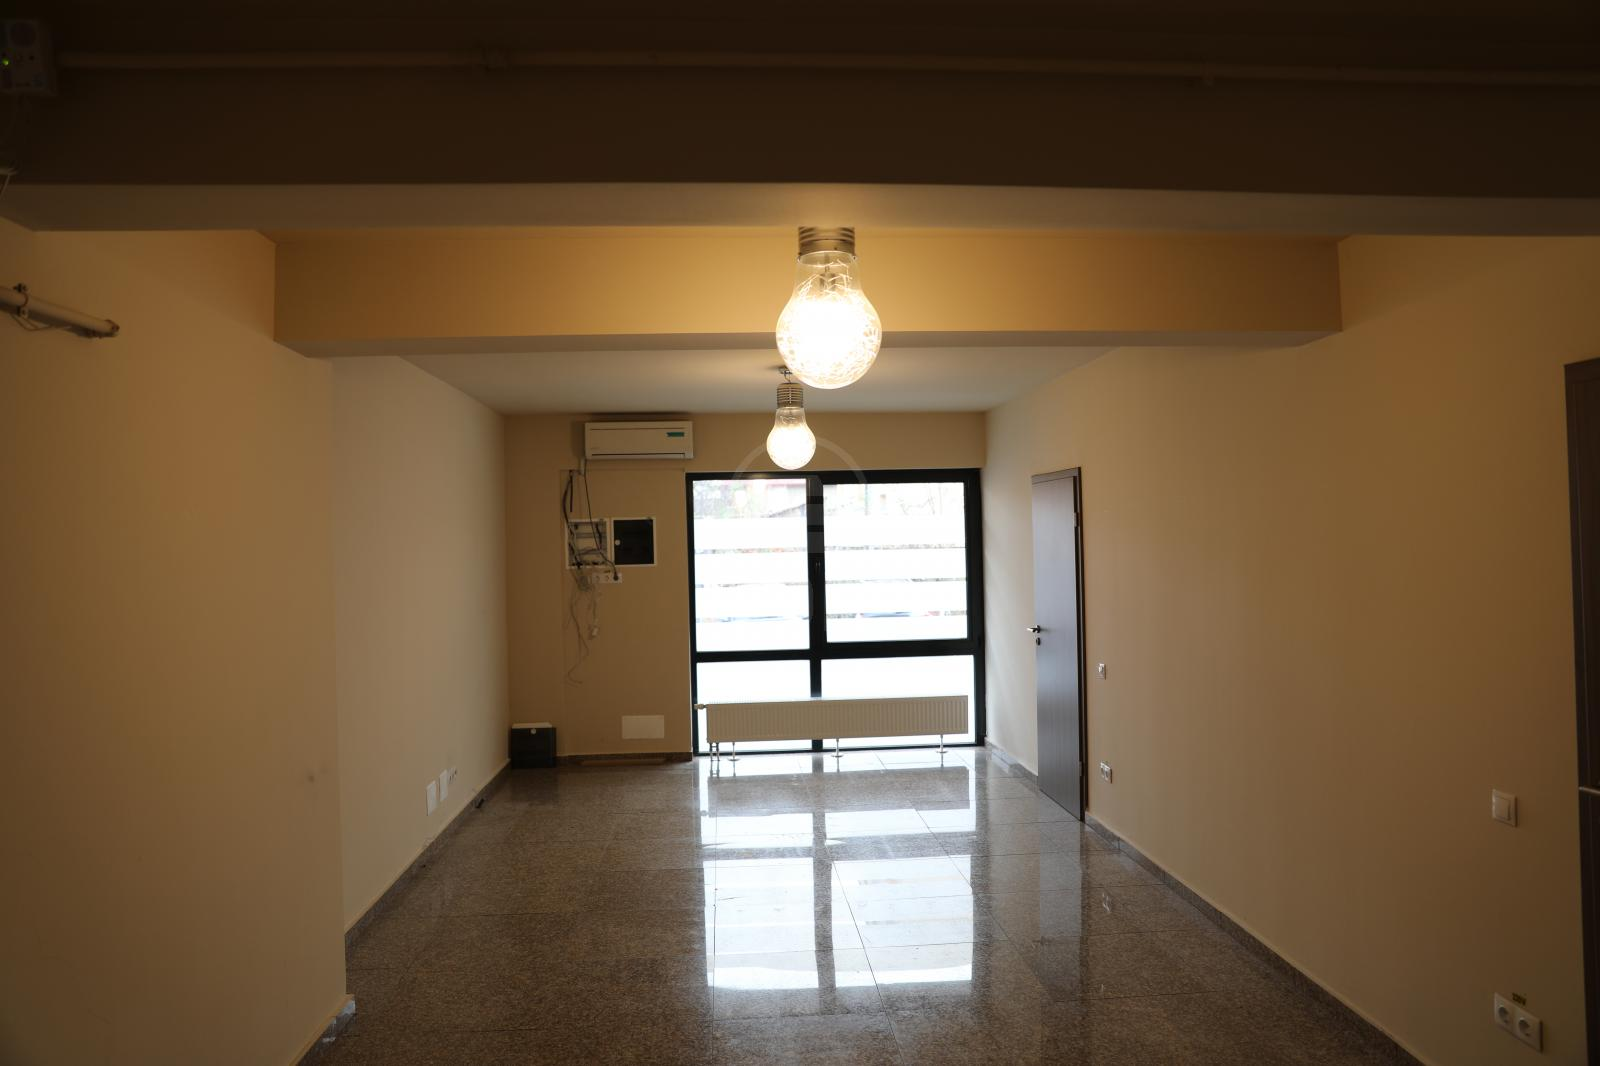 Commercial space for sale 3 rooms, SCCJ297529-9